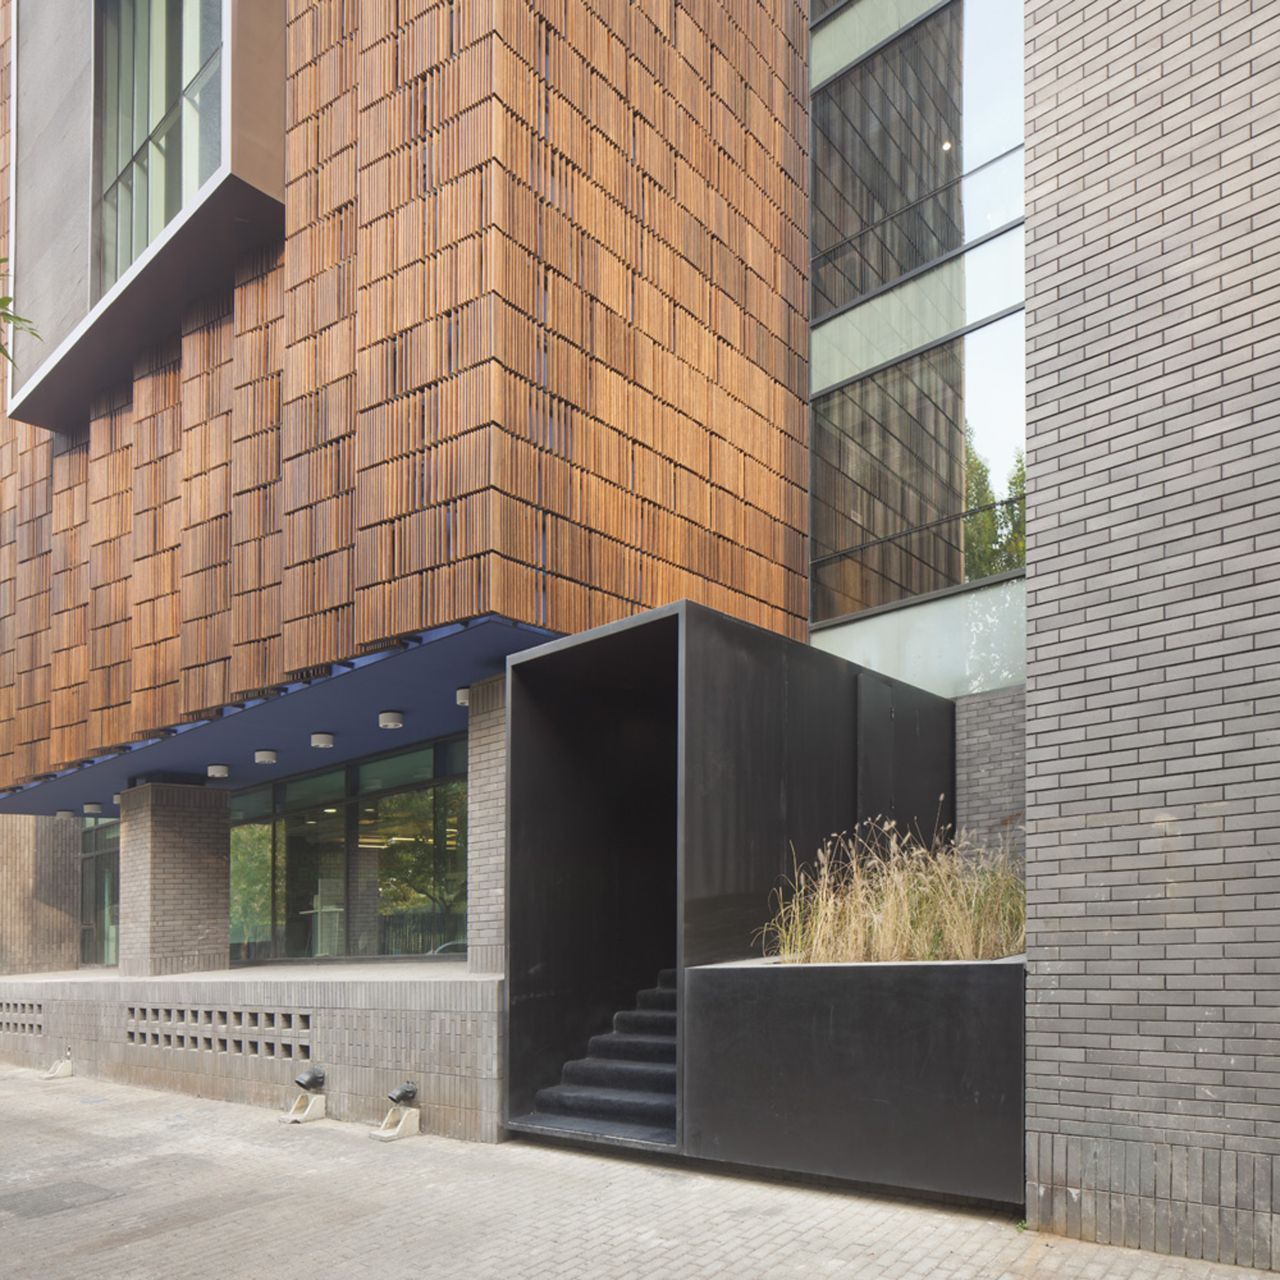 Brick, Wood, Glass, Stone Facade With Sheet Metal Entryway